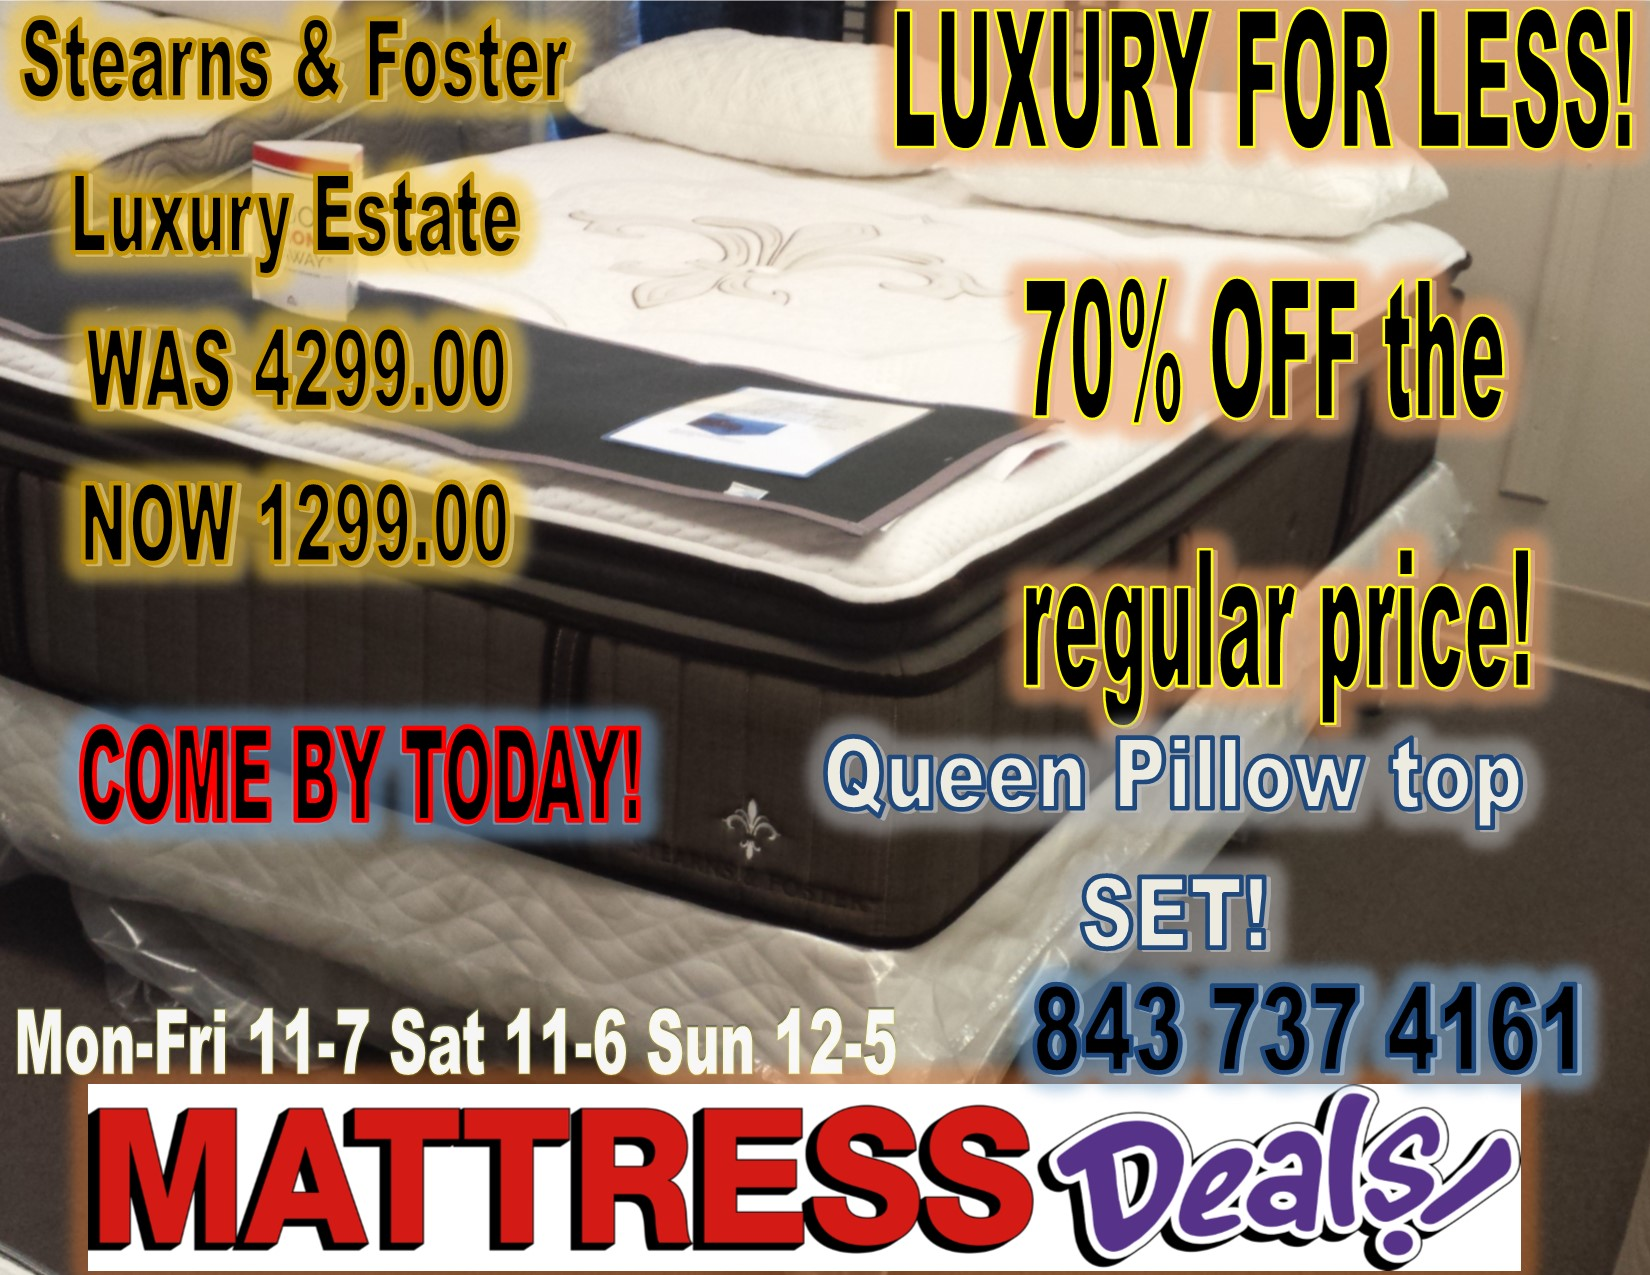 Mattress Deals image 50